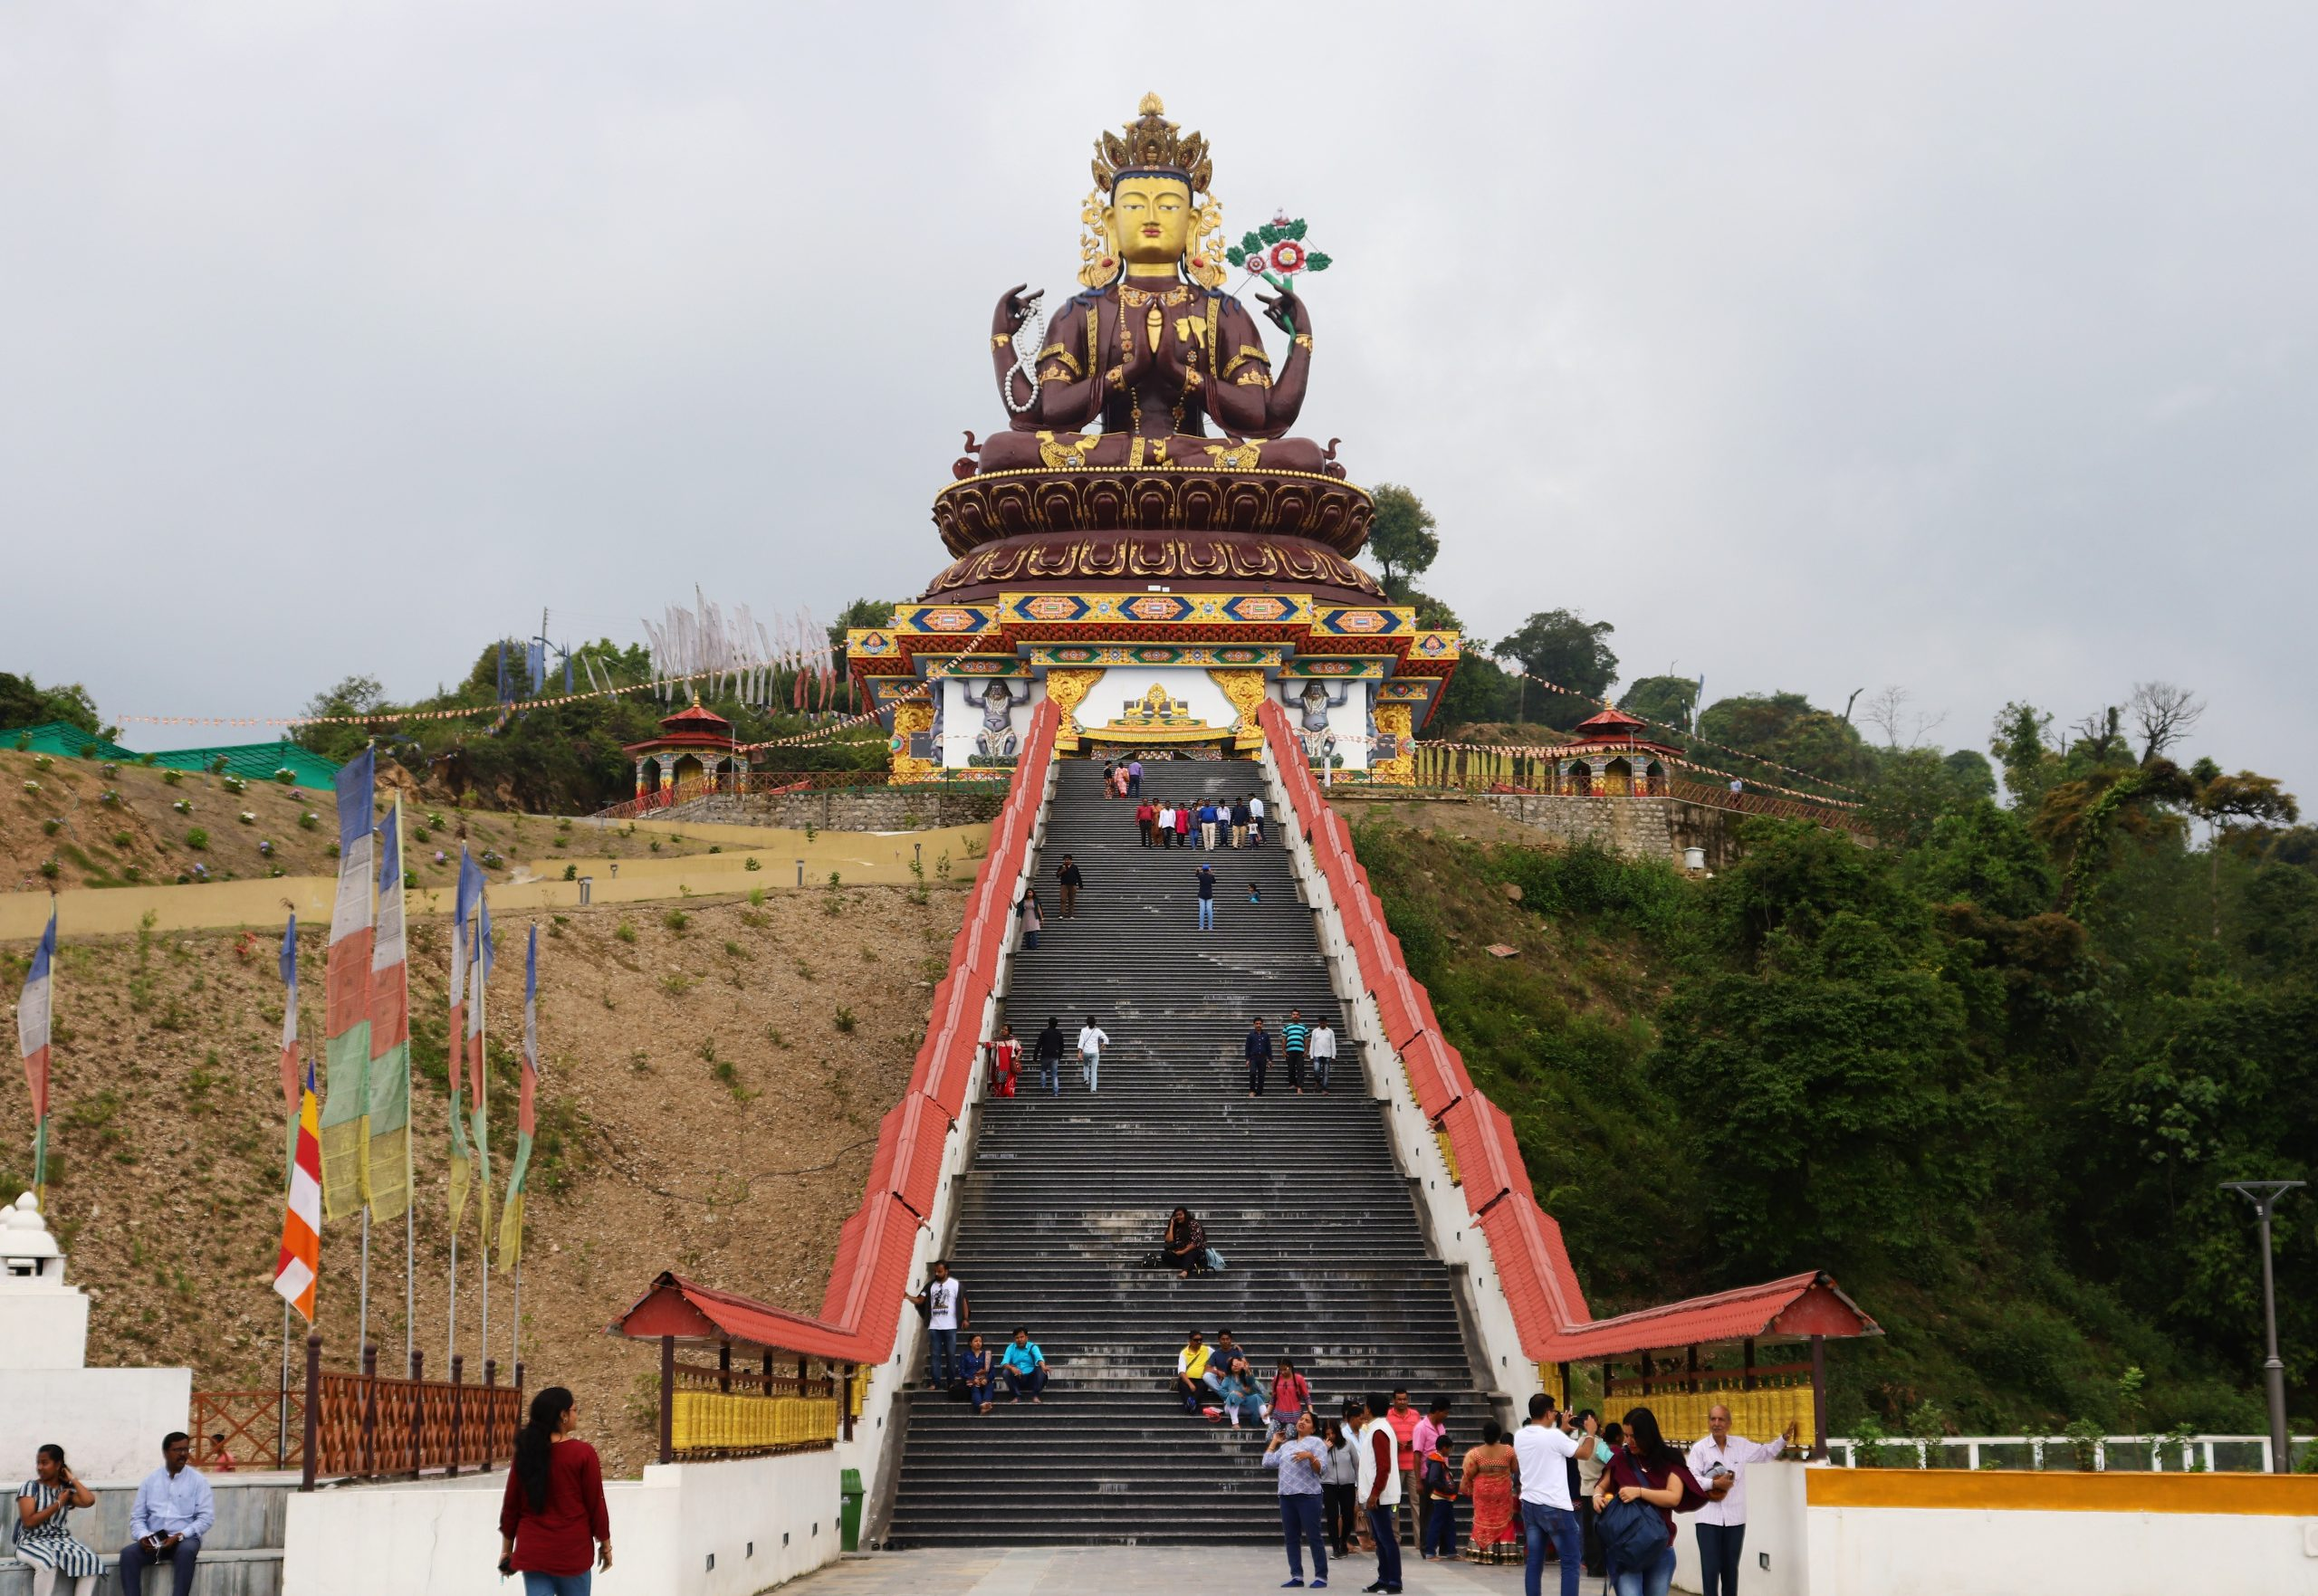 A temple on a hill